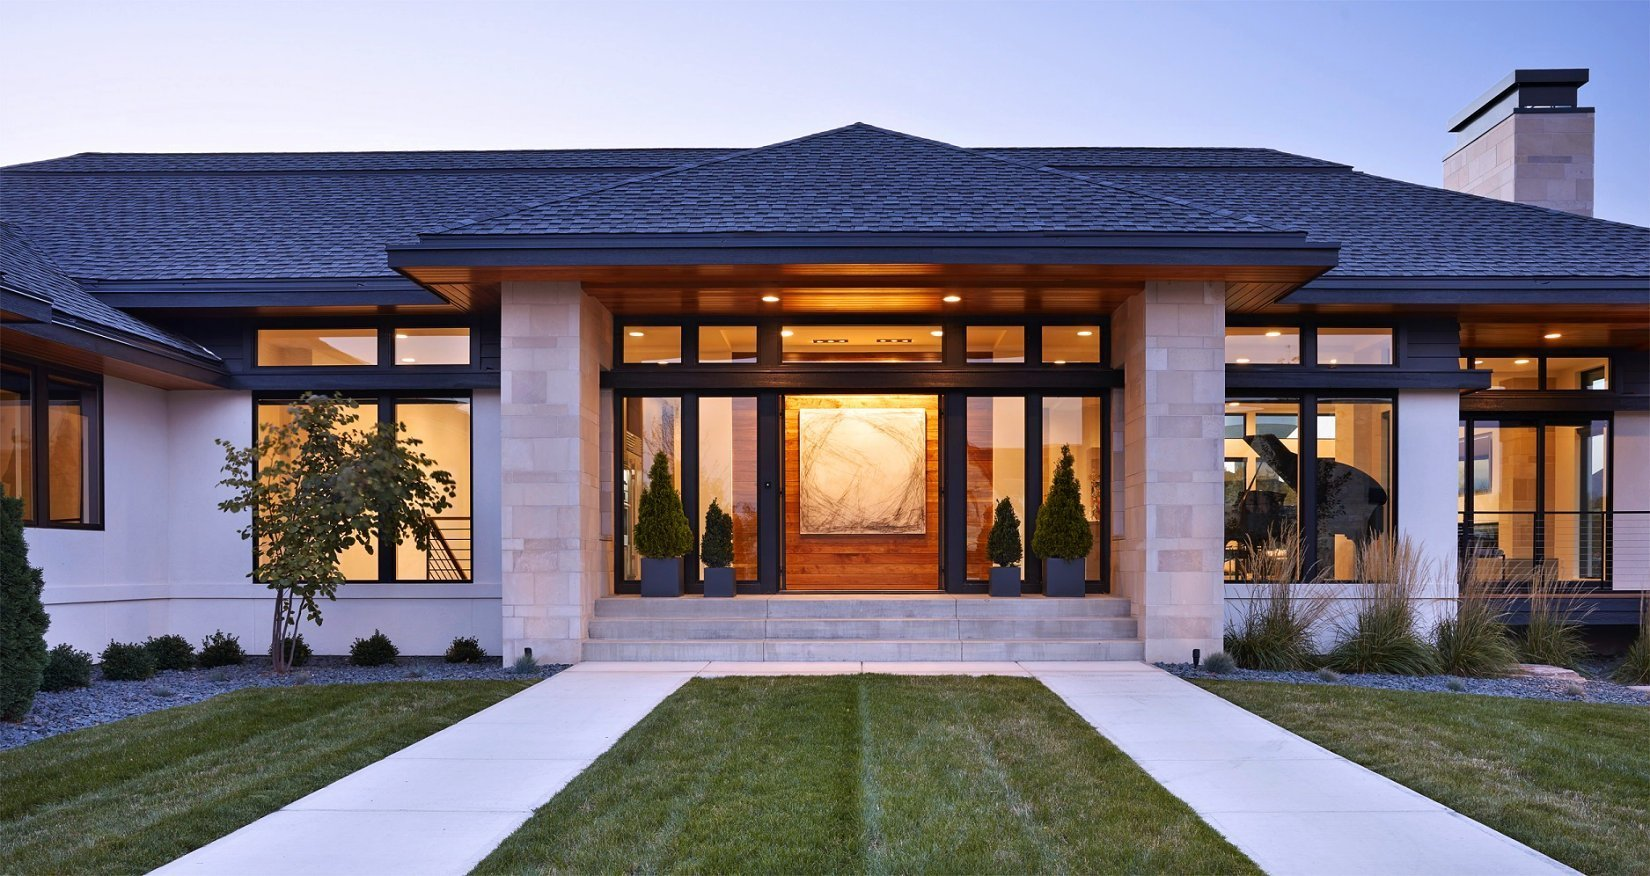 Sioux Falls Modern style home grand entry